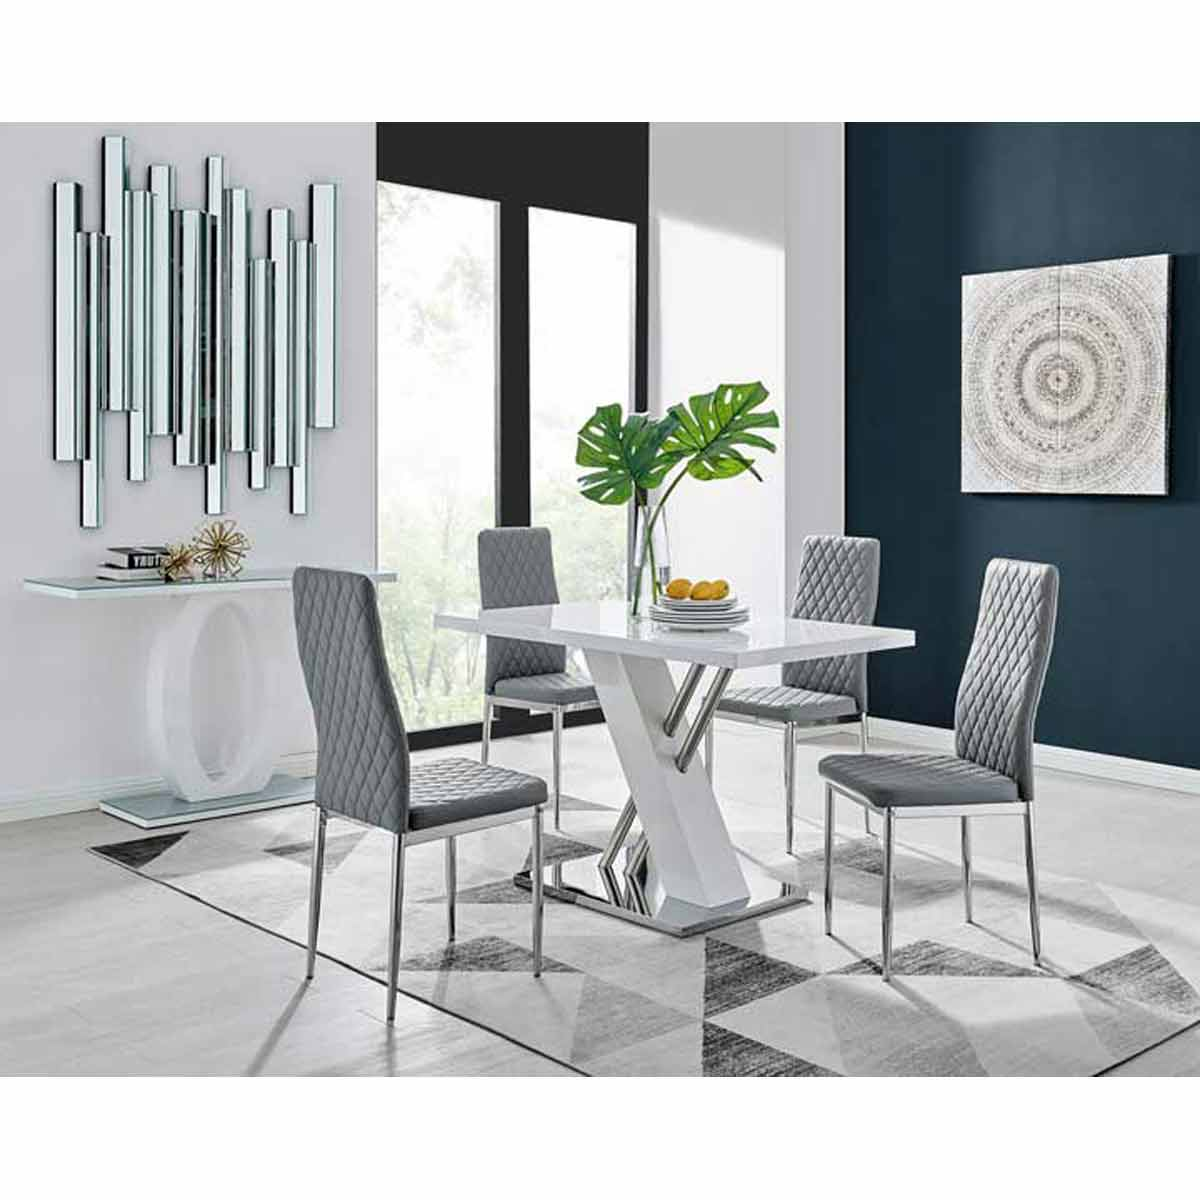 Furniture Box Sorrento 4 White High Gloss And Stainless Steel Dining Table And 4 Grey Milan Chairs Set